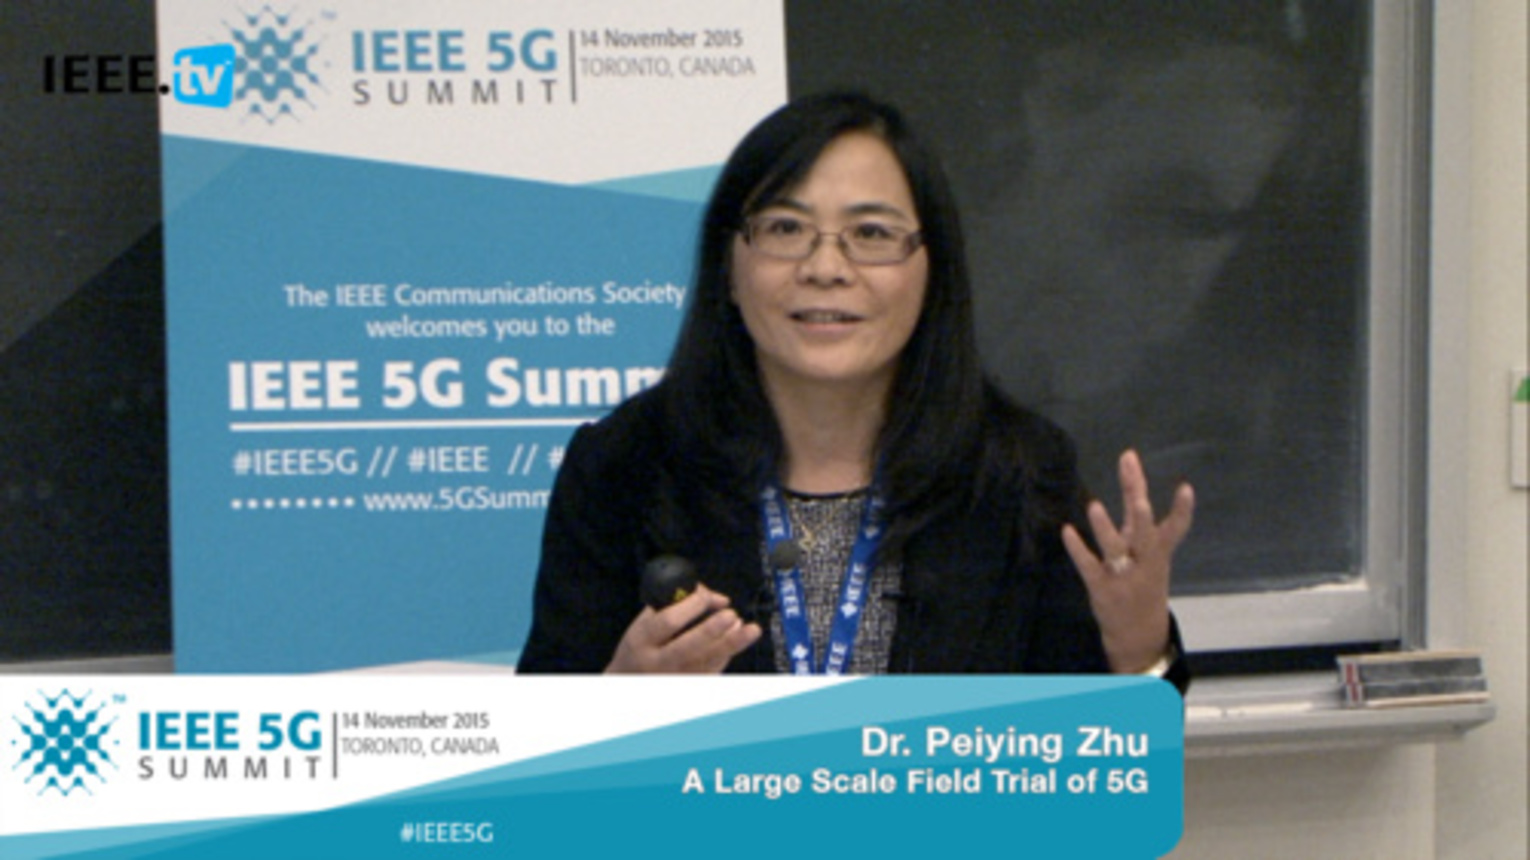 Toronto 5G Summit - 2015 - Peiying Zhu - A Large Scale Field Trial of 5G experimental system: A leap forward from 5G concept to reality